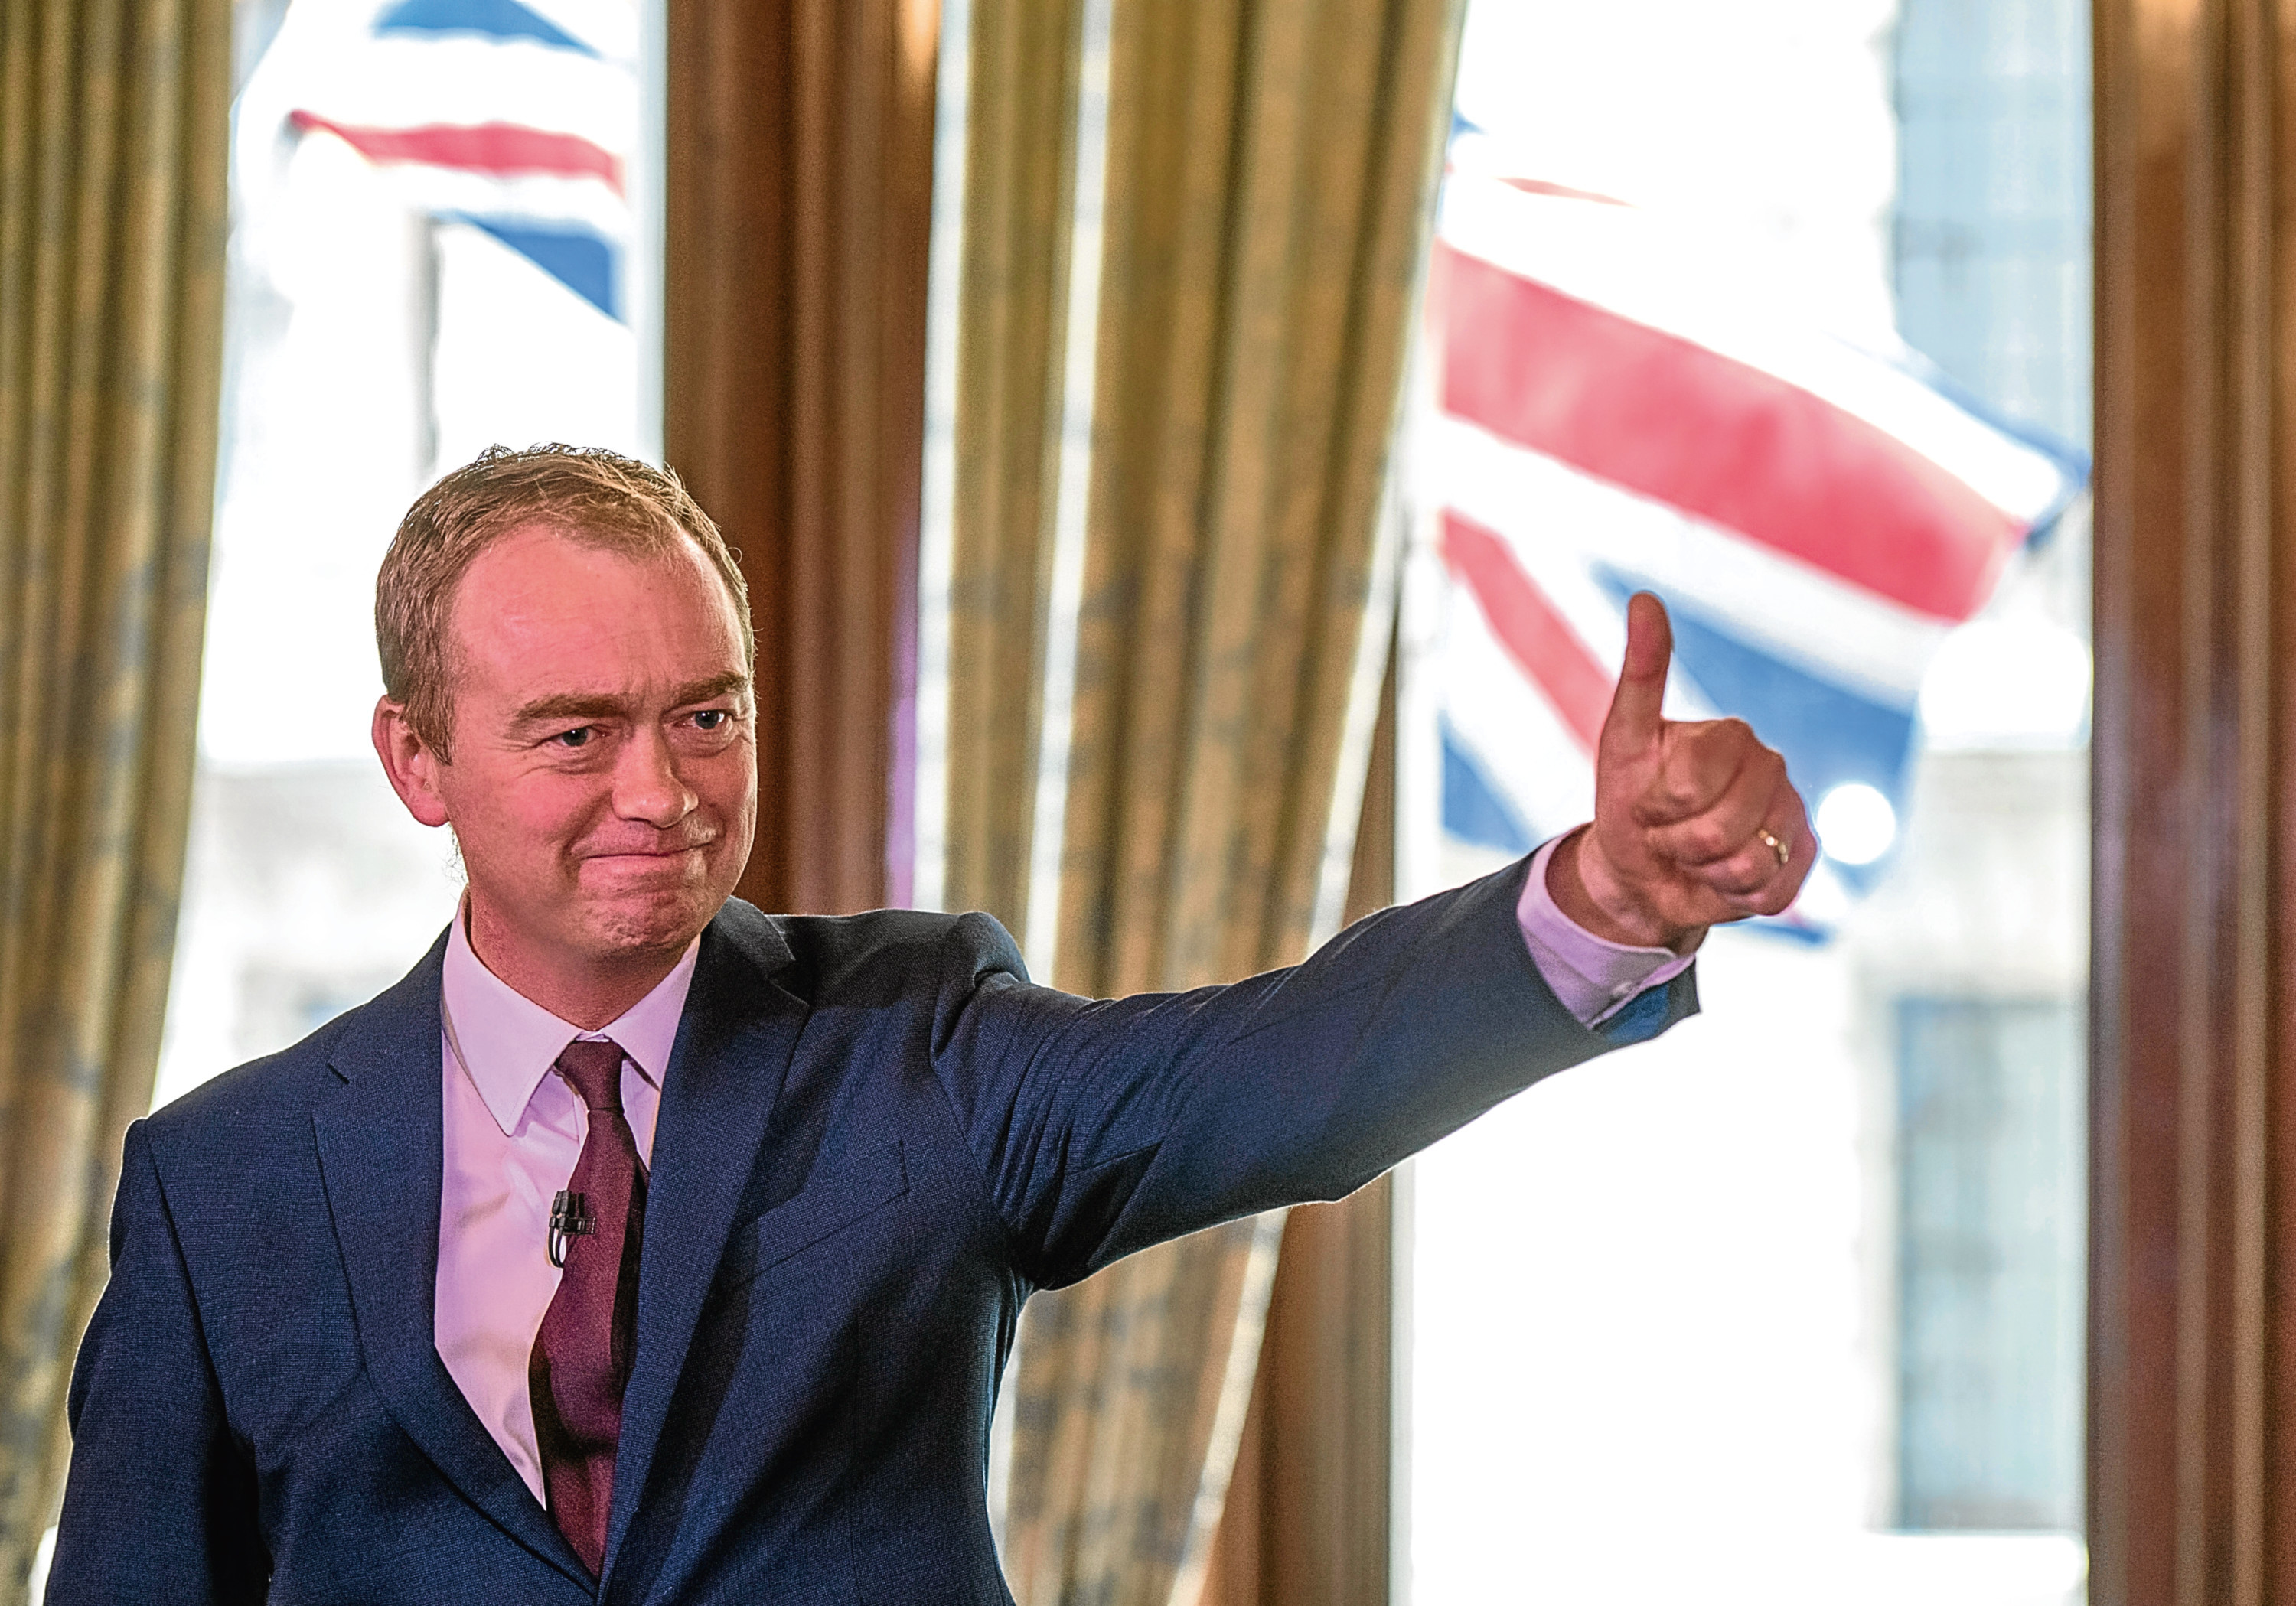 Liberal Democrat leader Tim Farron who announced his intention to stand down.